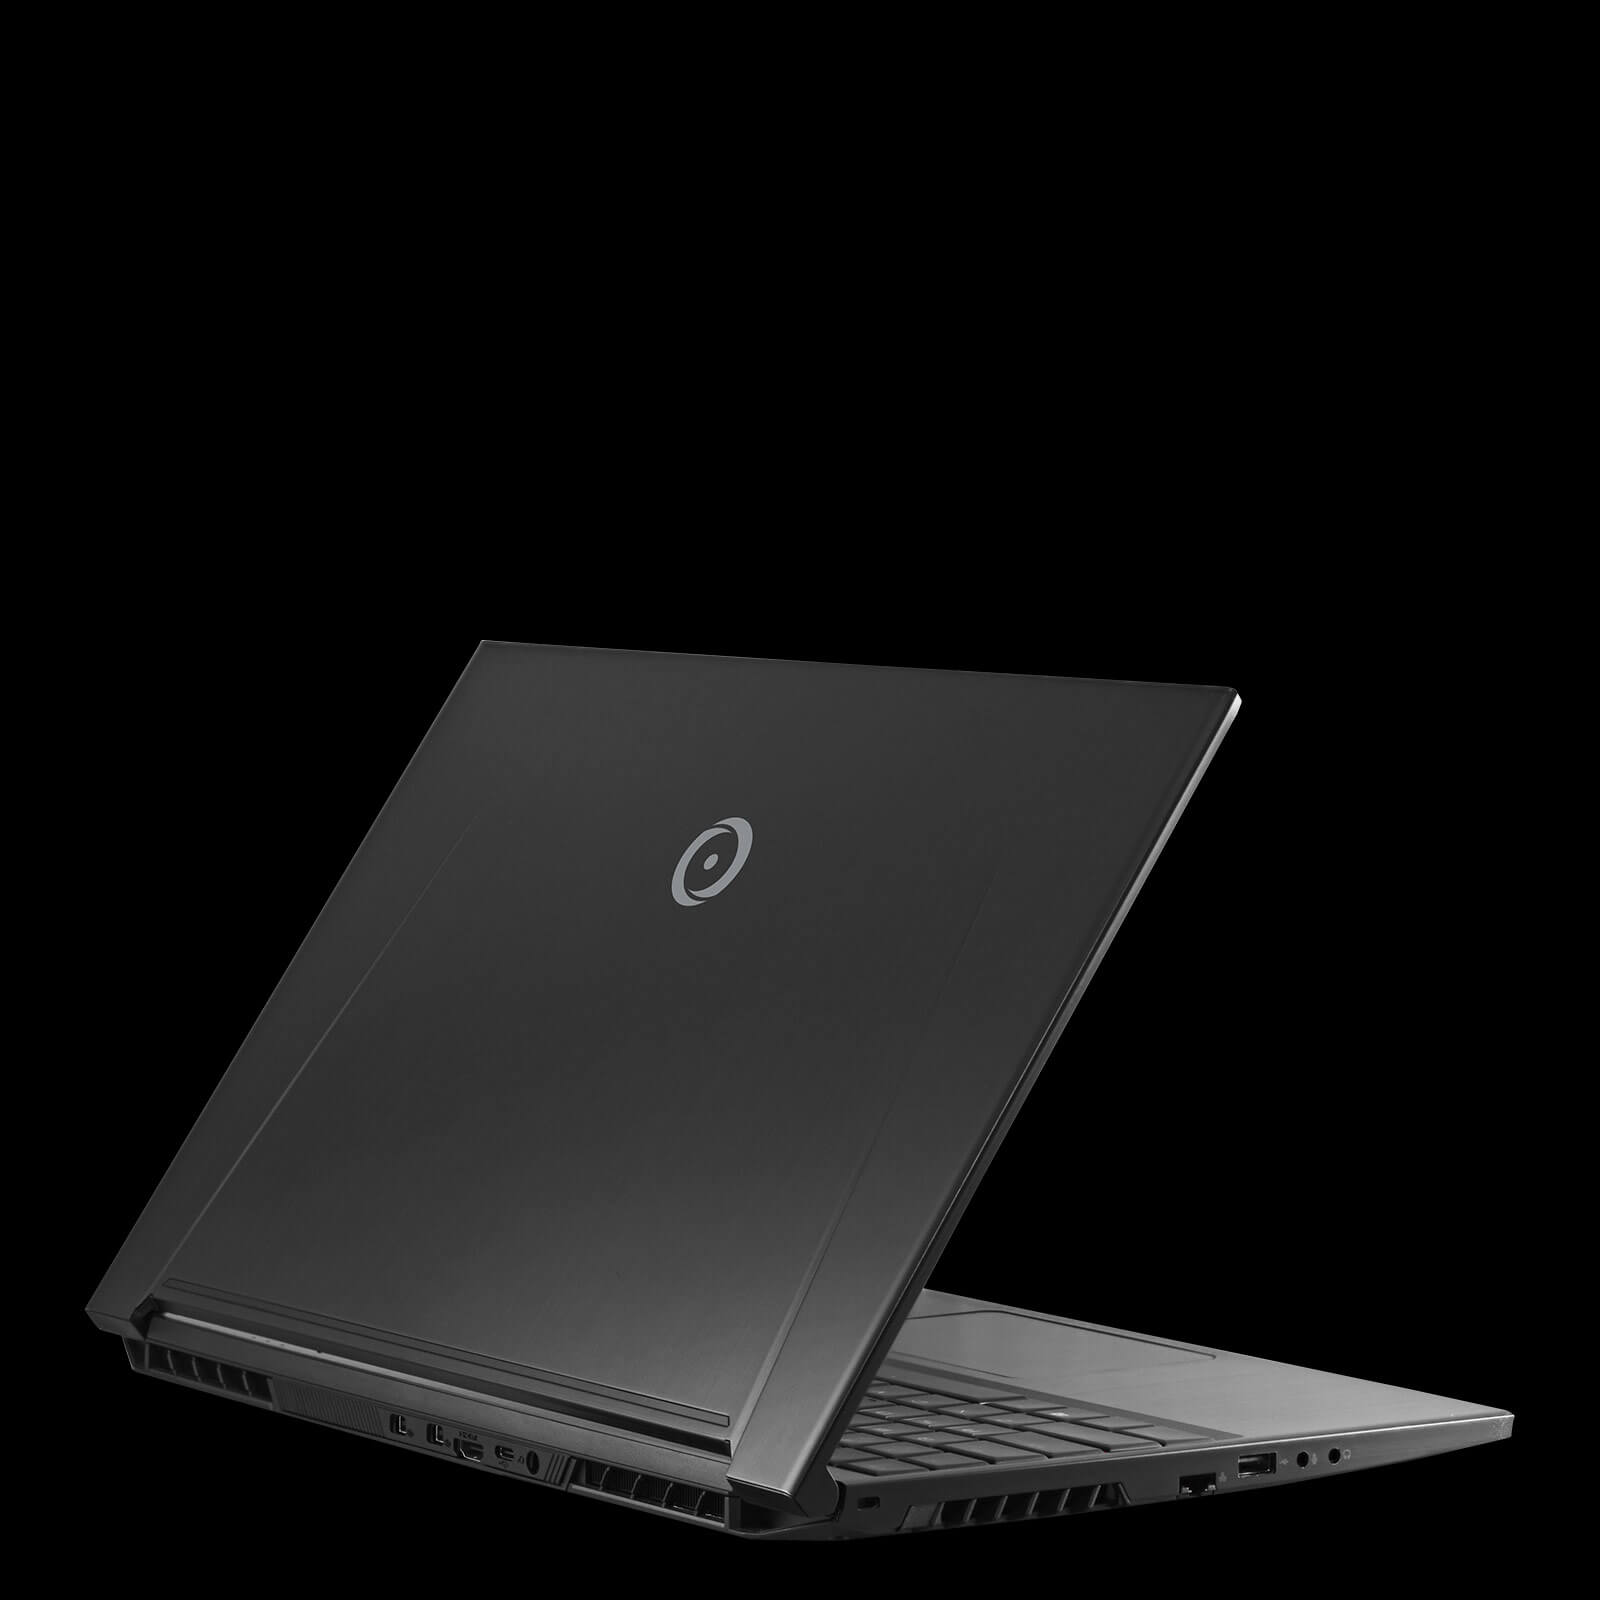 Eon15 S Gaming Laptop Origin Pc Computer Diagram With Its Parts Best Laptops Under 500 Gallery